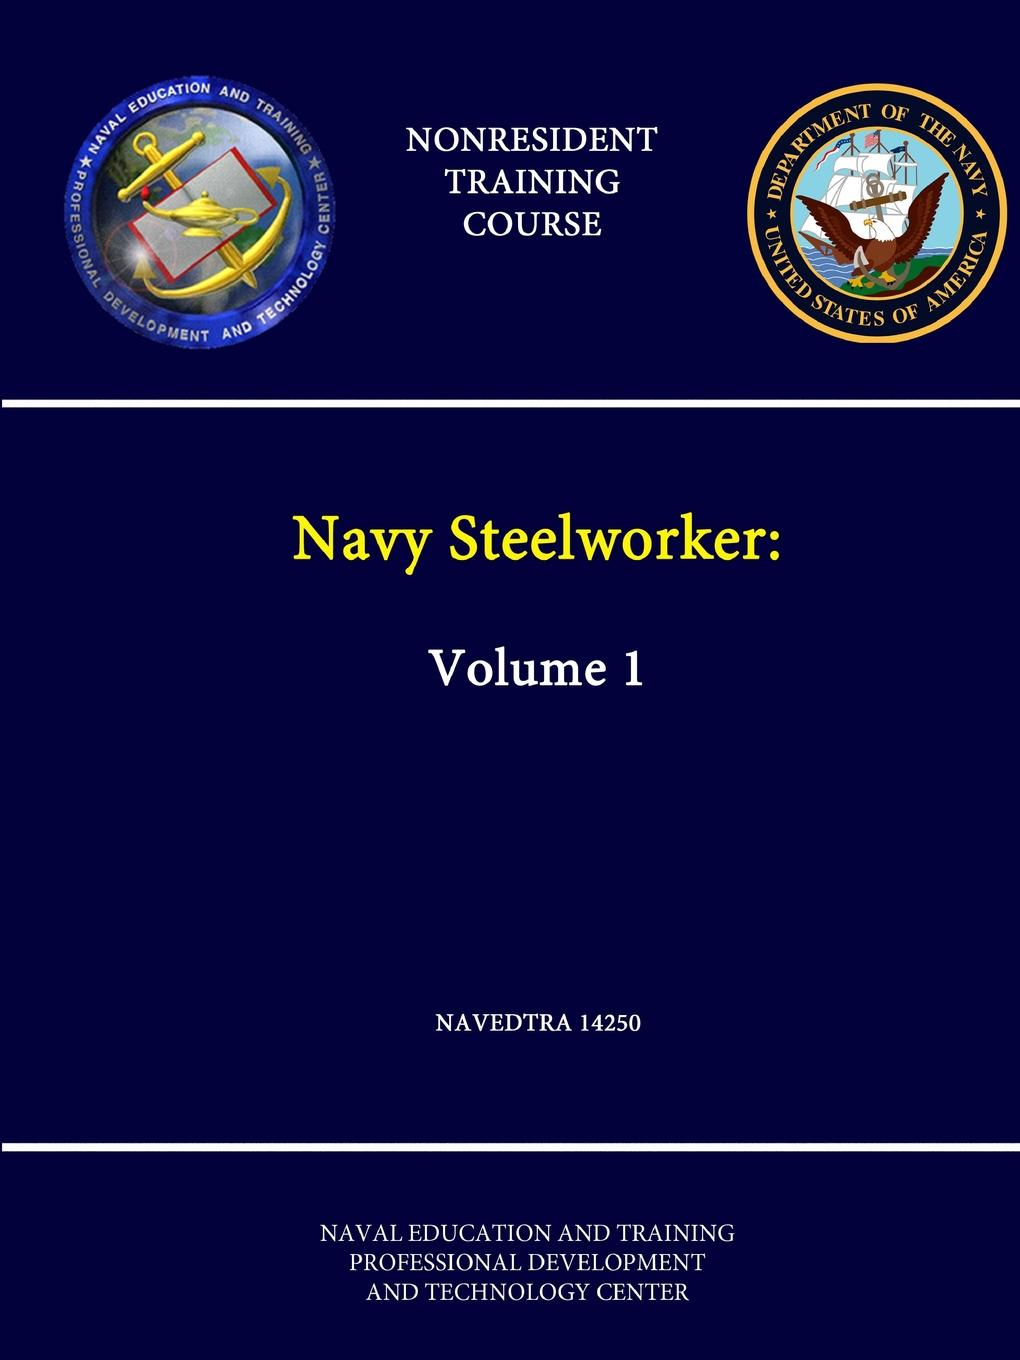 Naval Education & Training Center Navy Steelworker. Volume 1 - NAVEDTRA 14250 - (Nonresident Training Course)